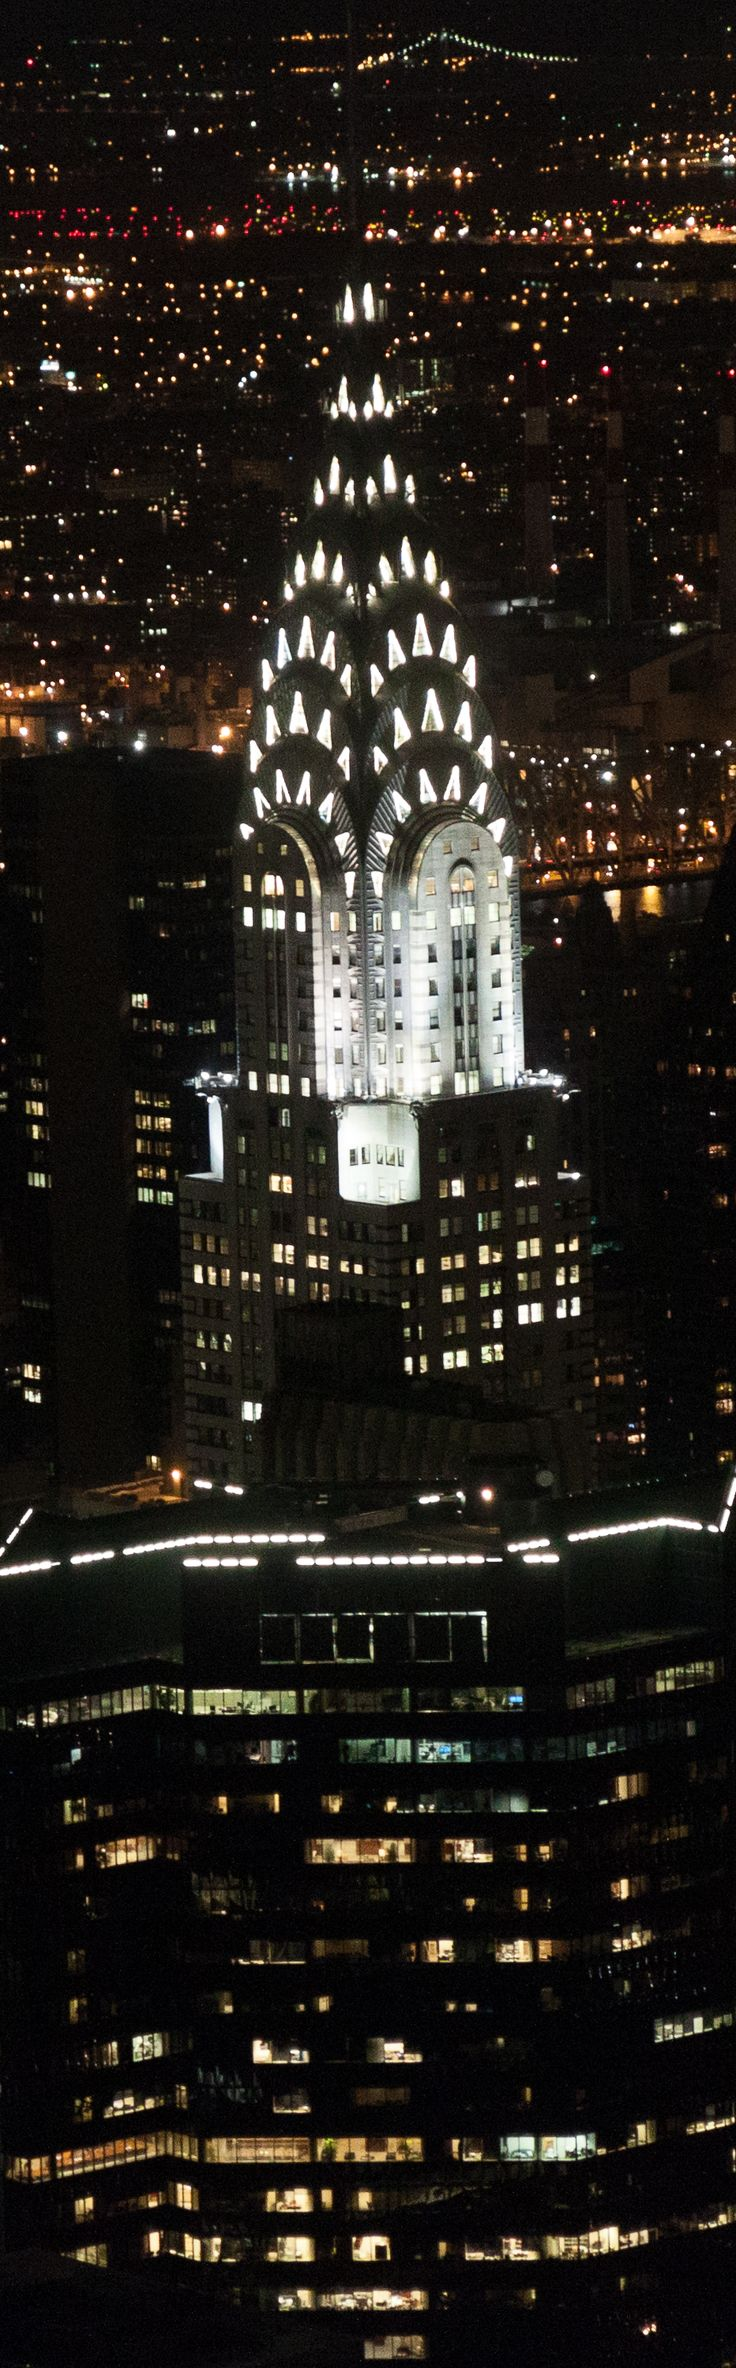 Chrysler Building as viewed from Empire State Building